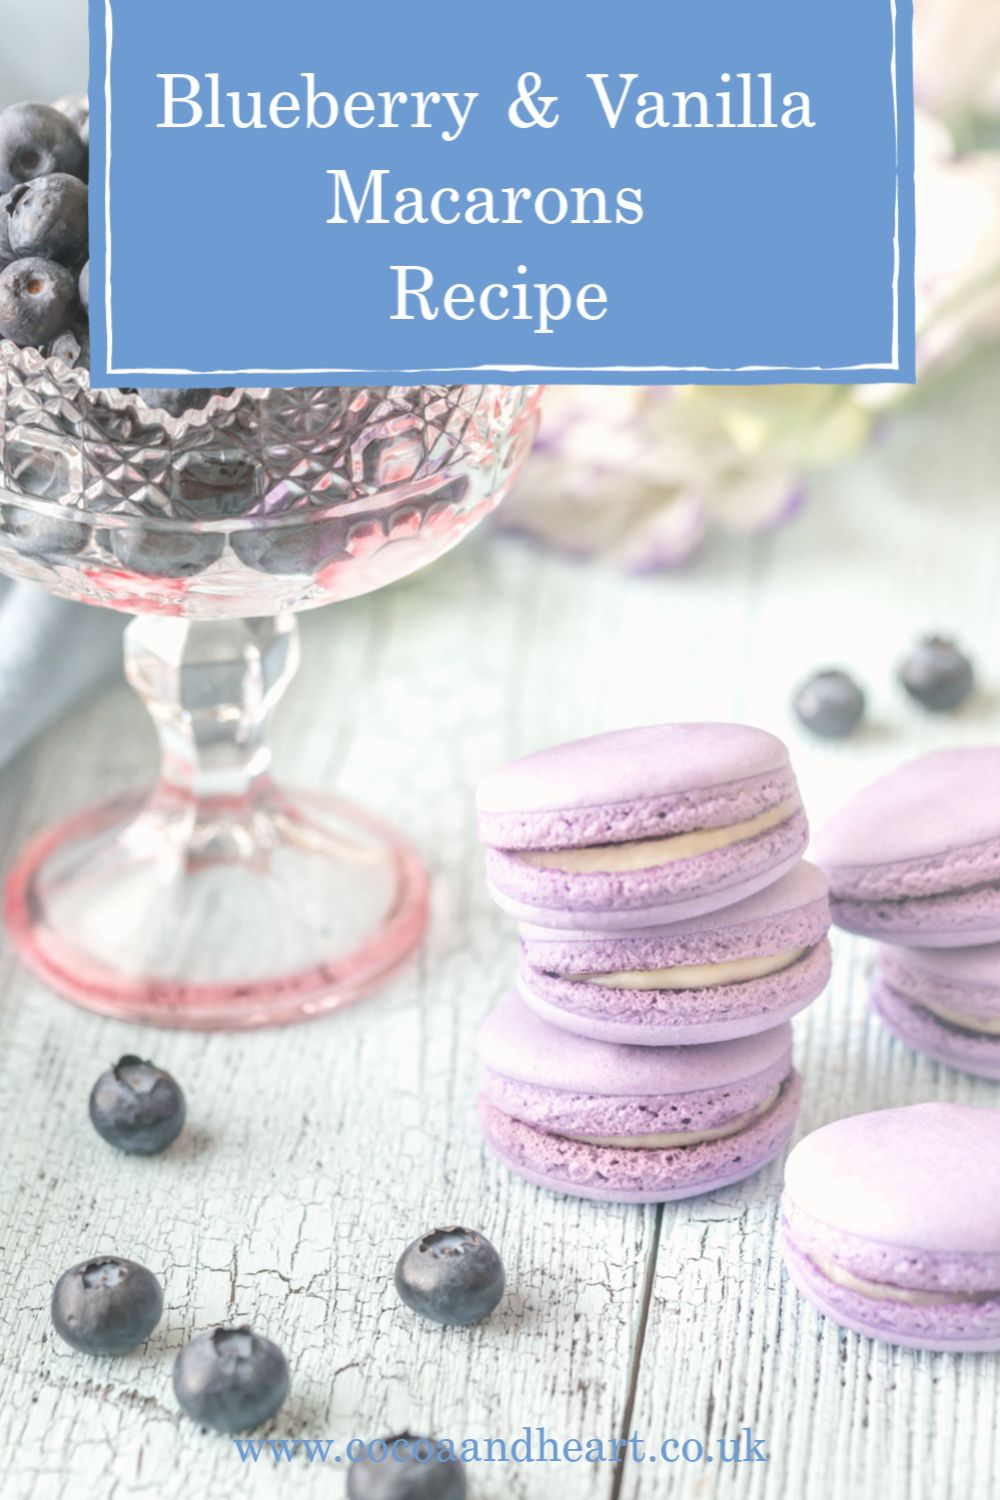 Blueberry & Vanilla Macarons Recipe